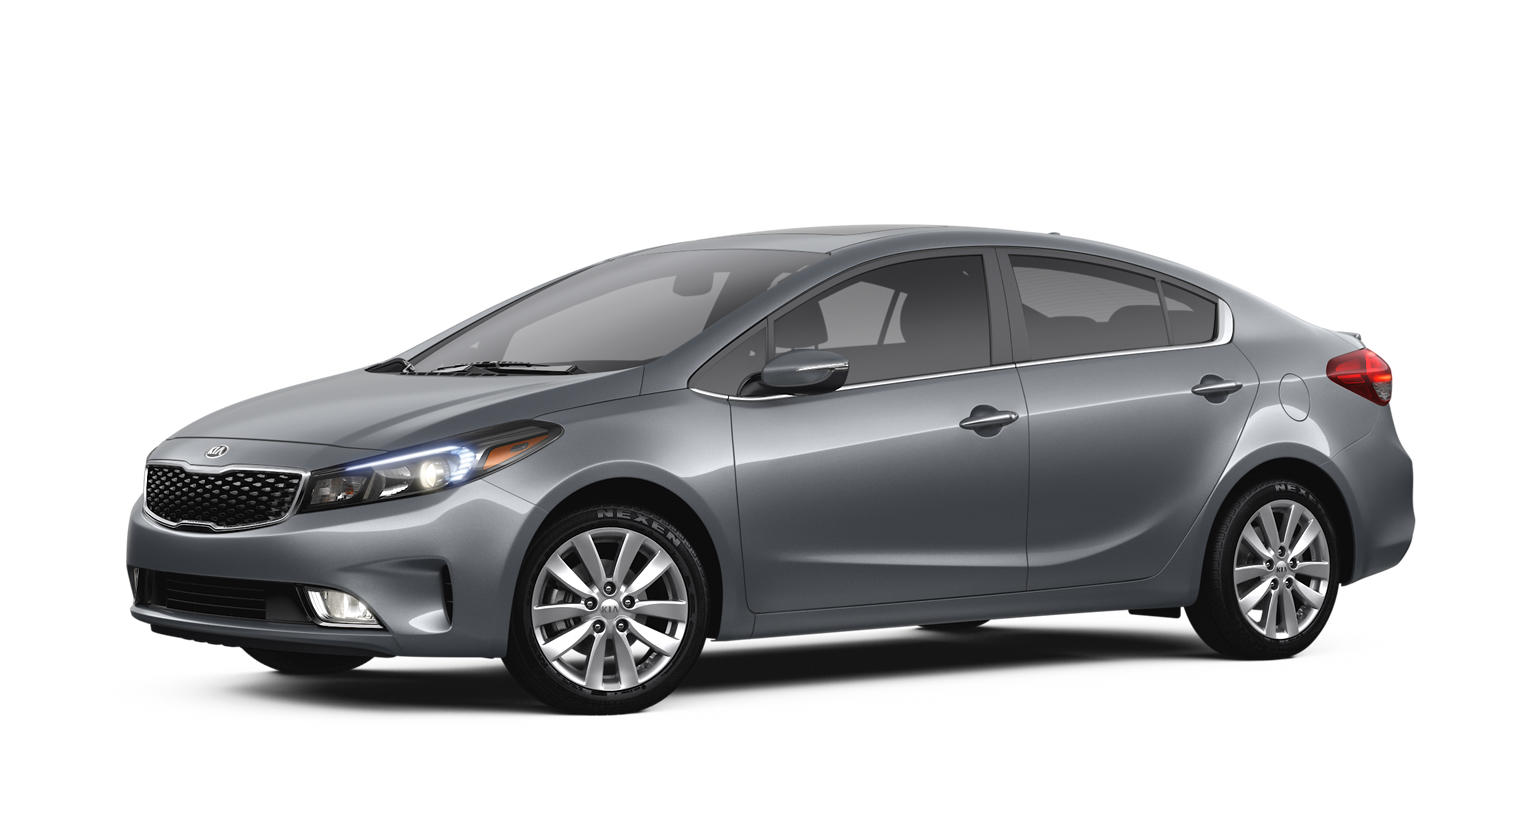 The 2017 Kia Forte is strong compact sedan beyond Honda, Toyota.